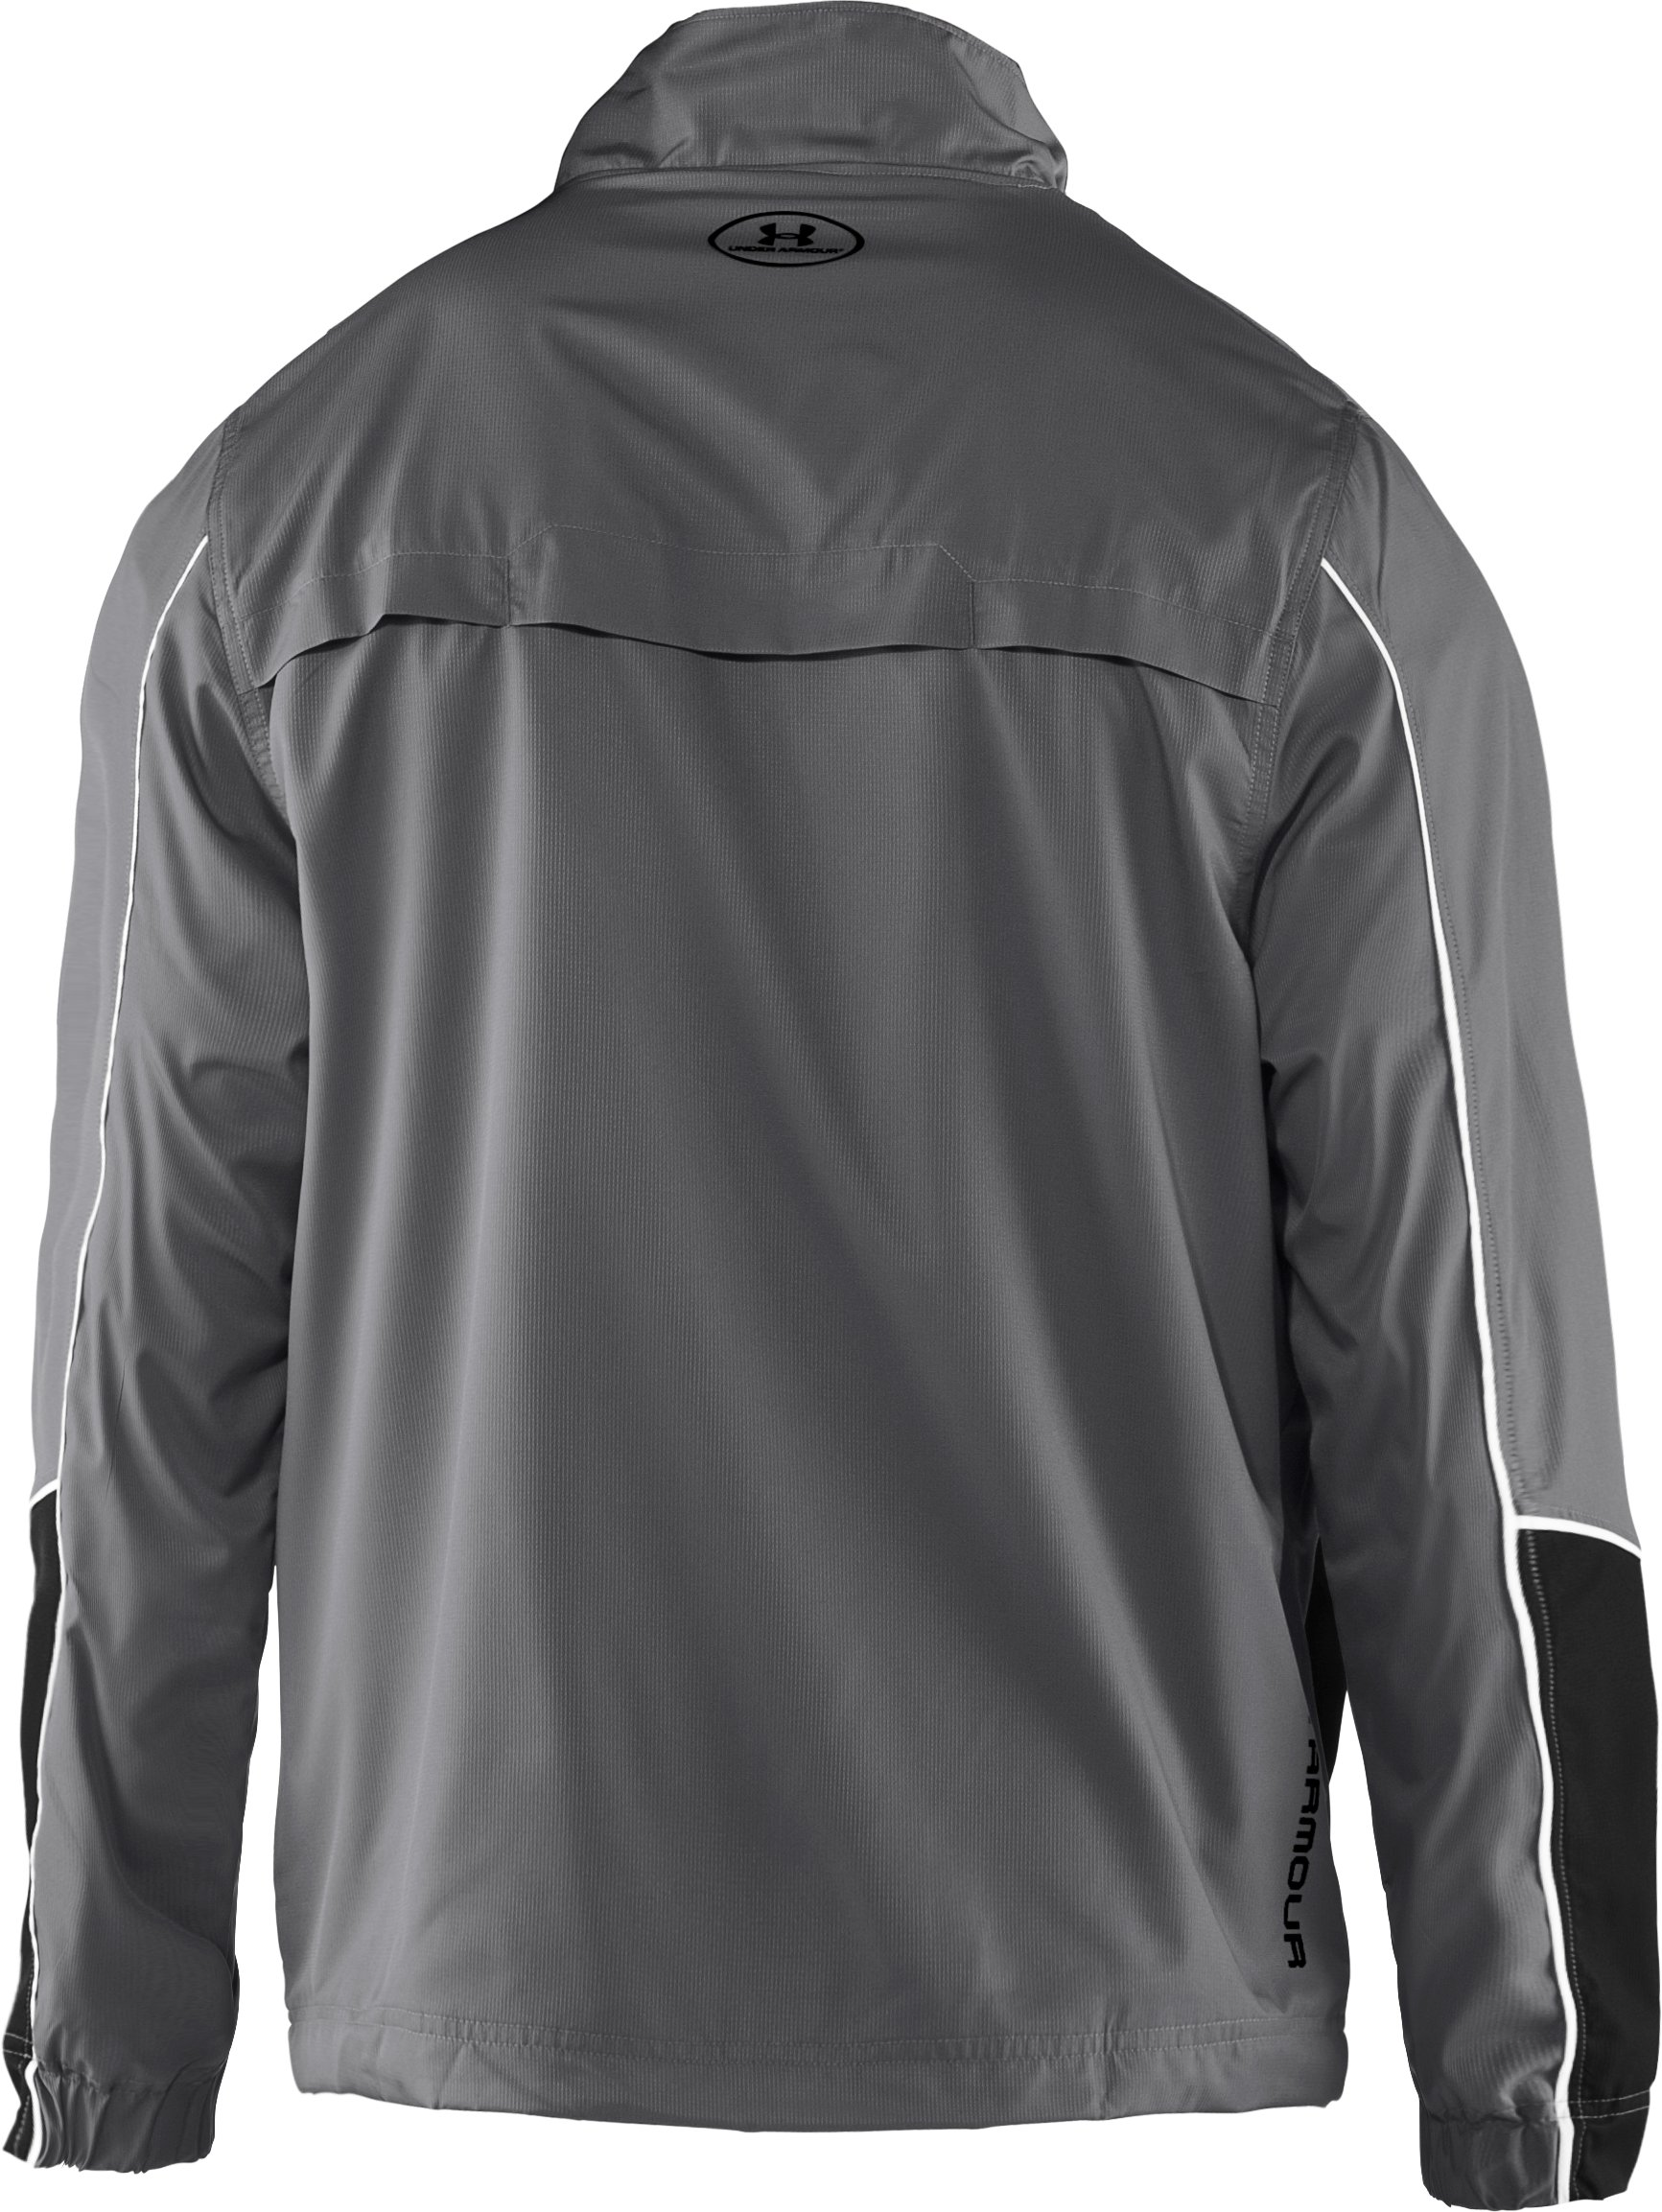 Men's UA Bandito Woven Warm-Up Jacket, Graphite